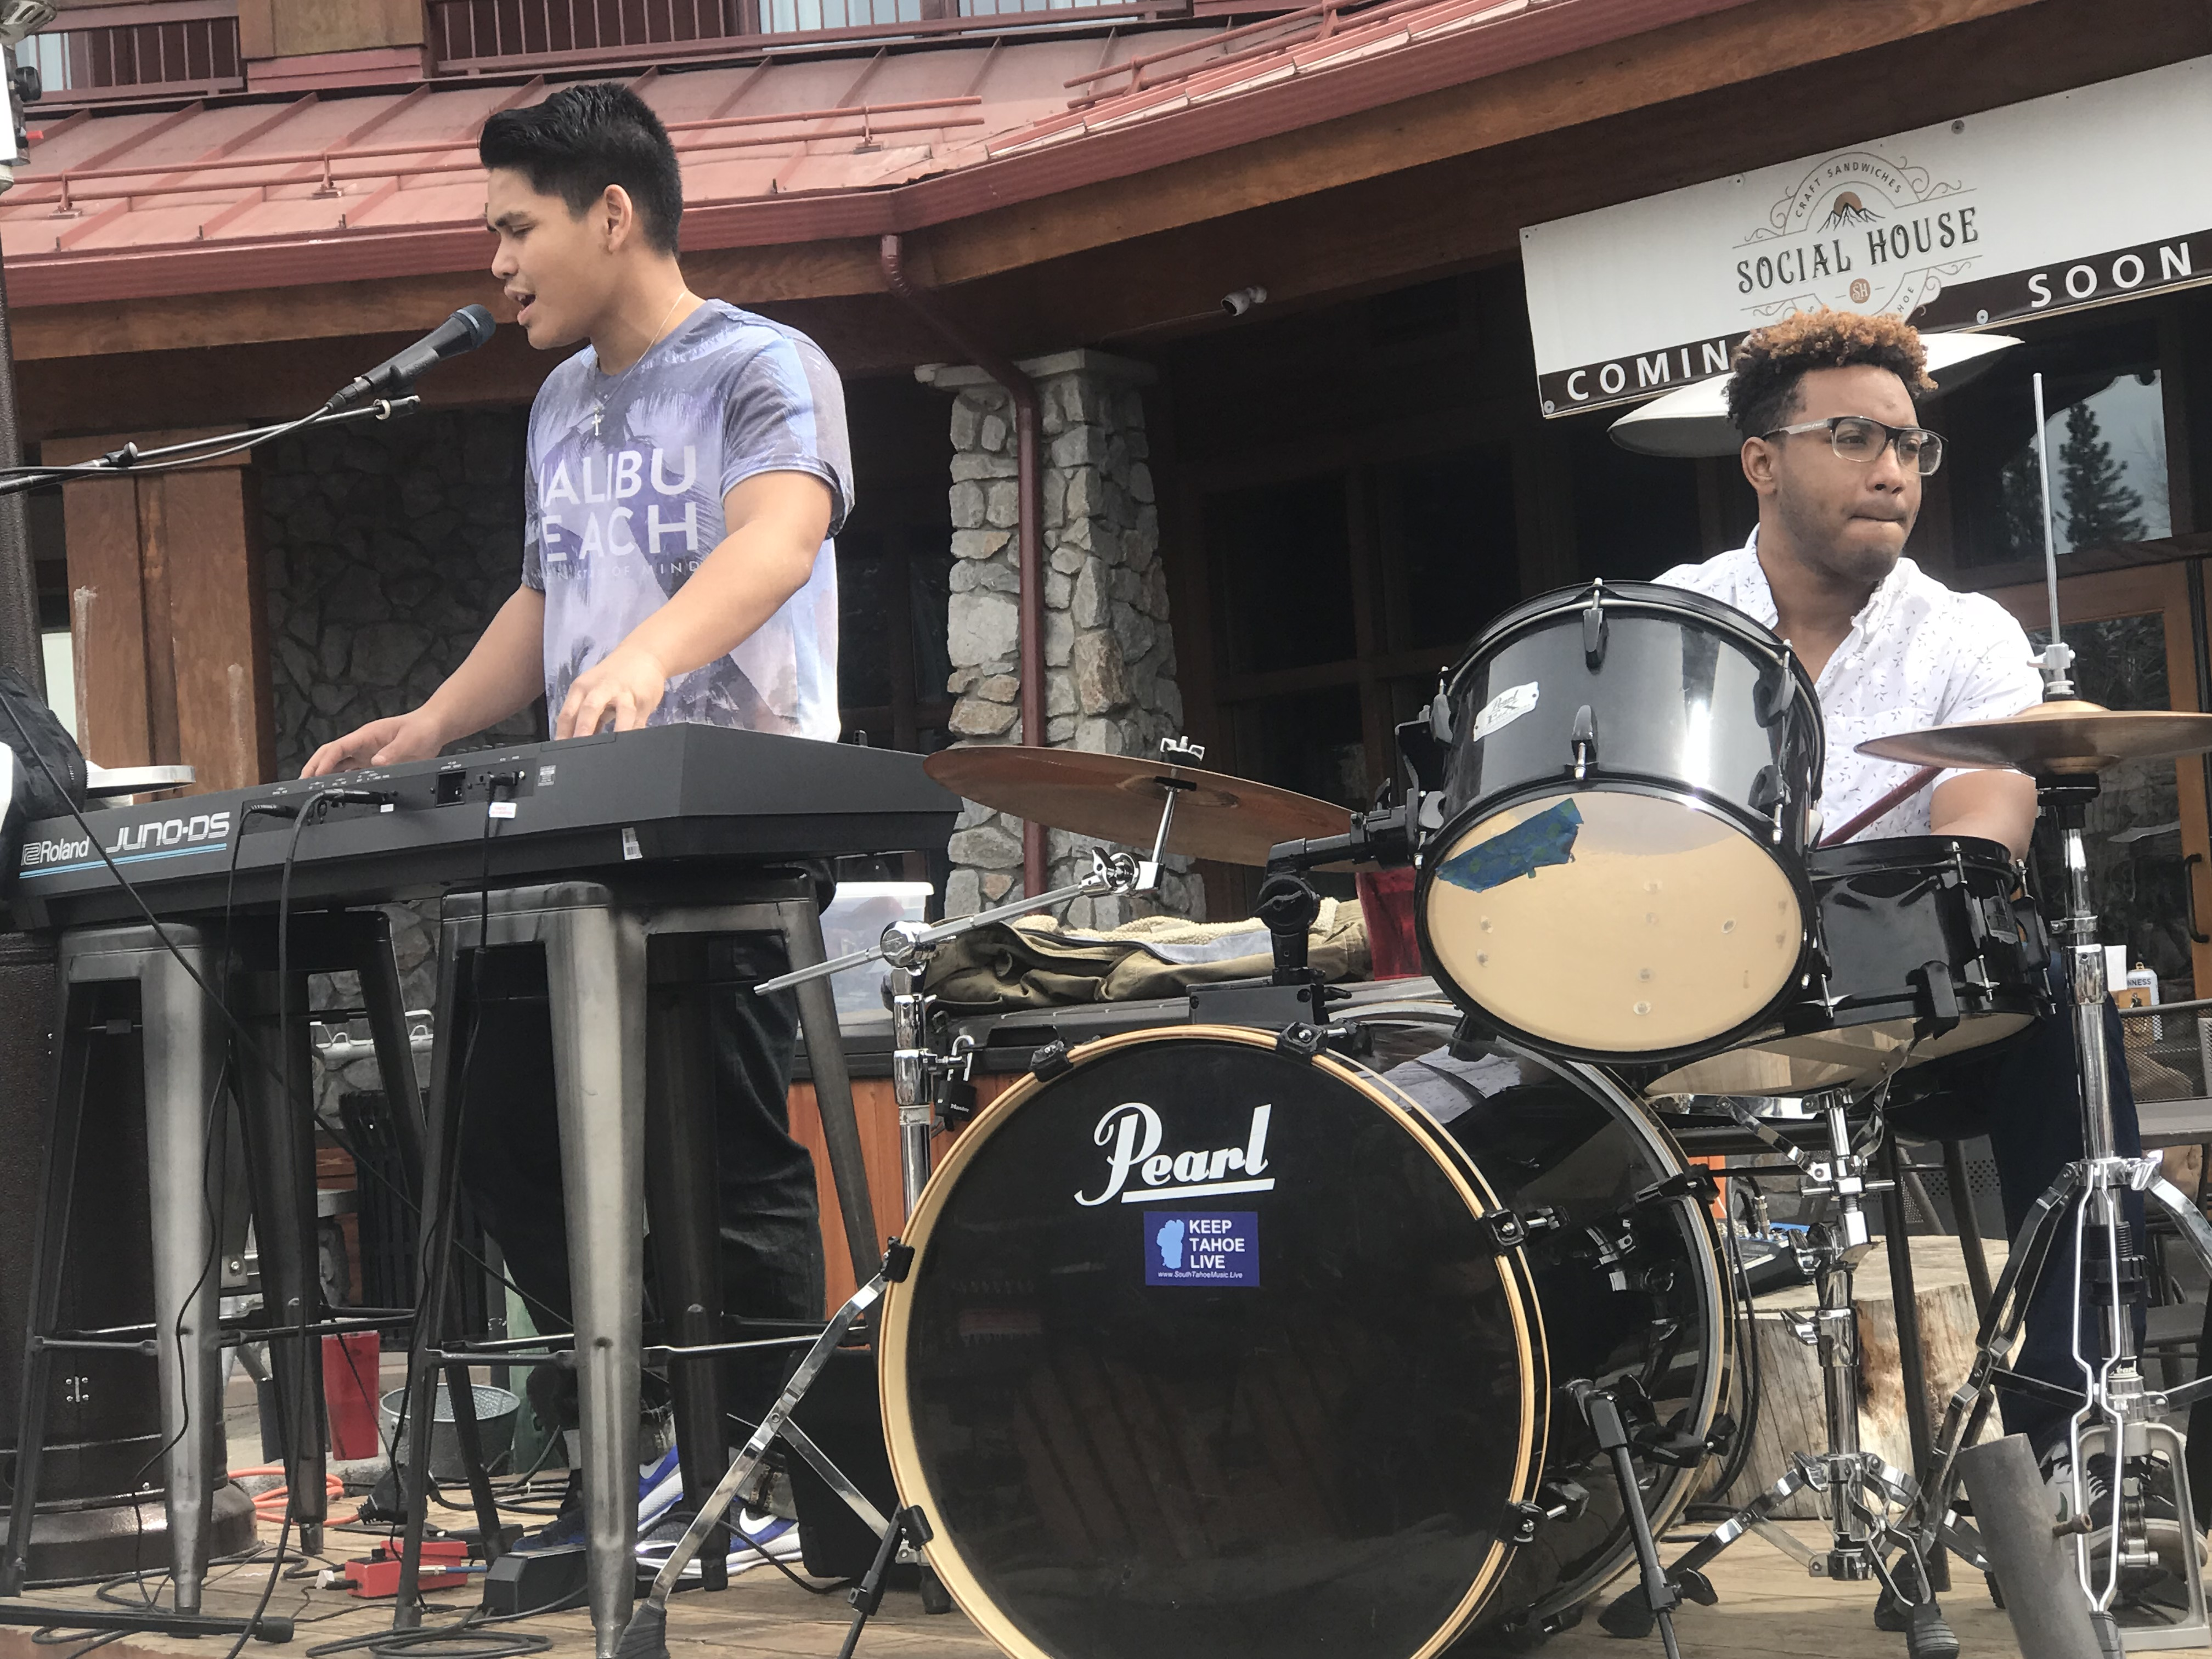 Daniel playing keyboards and Gonsin playing drums